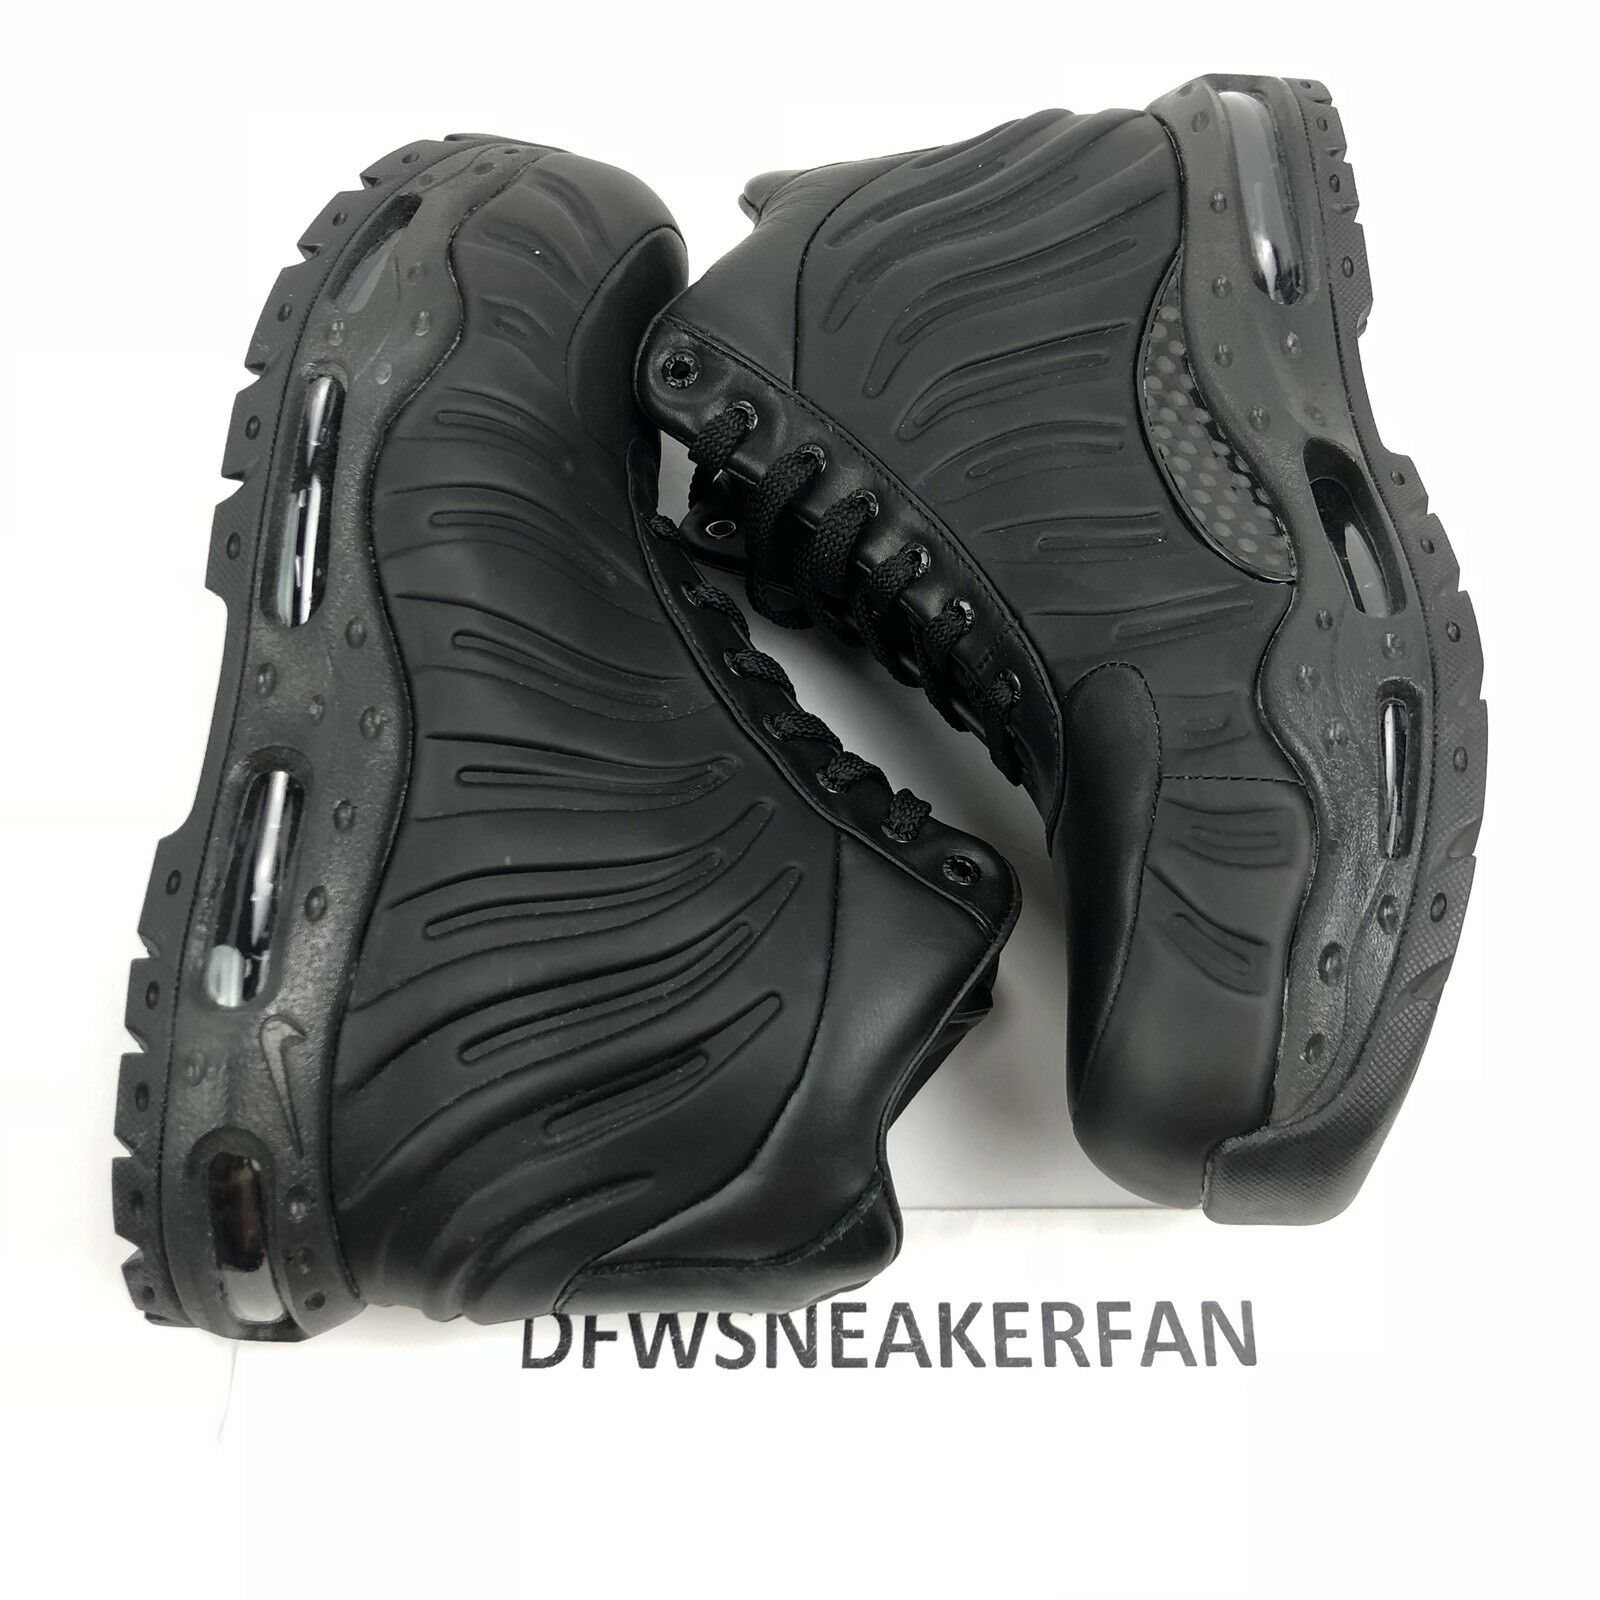 NEW NIKE AIR MAX FOAMDOME ACG FOAMPOSITE BOOTS BLACK 843749-002 MEN'S SIZE 9